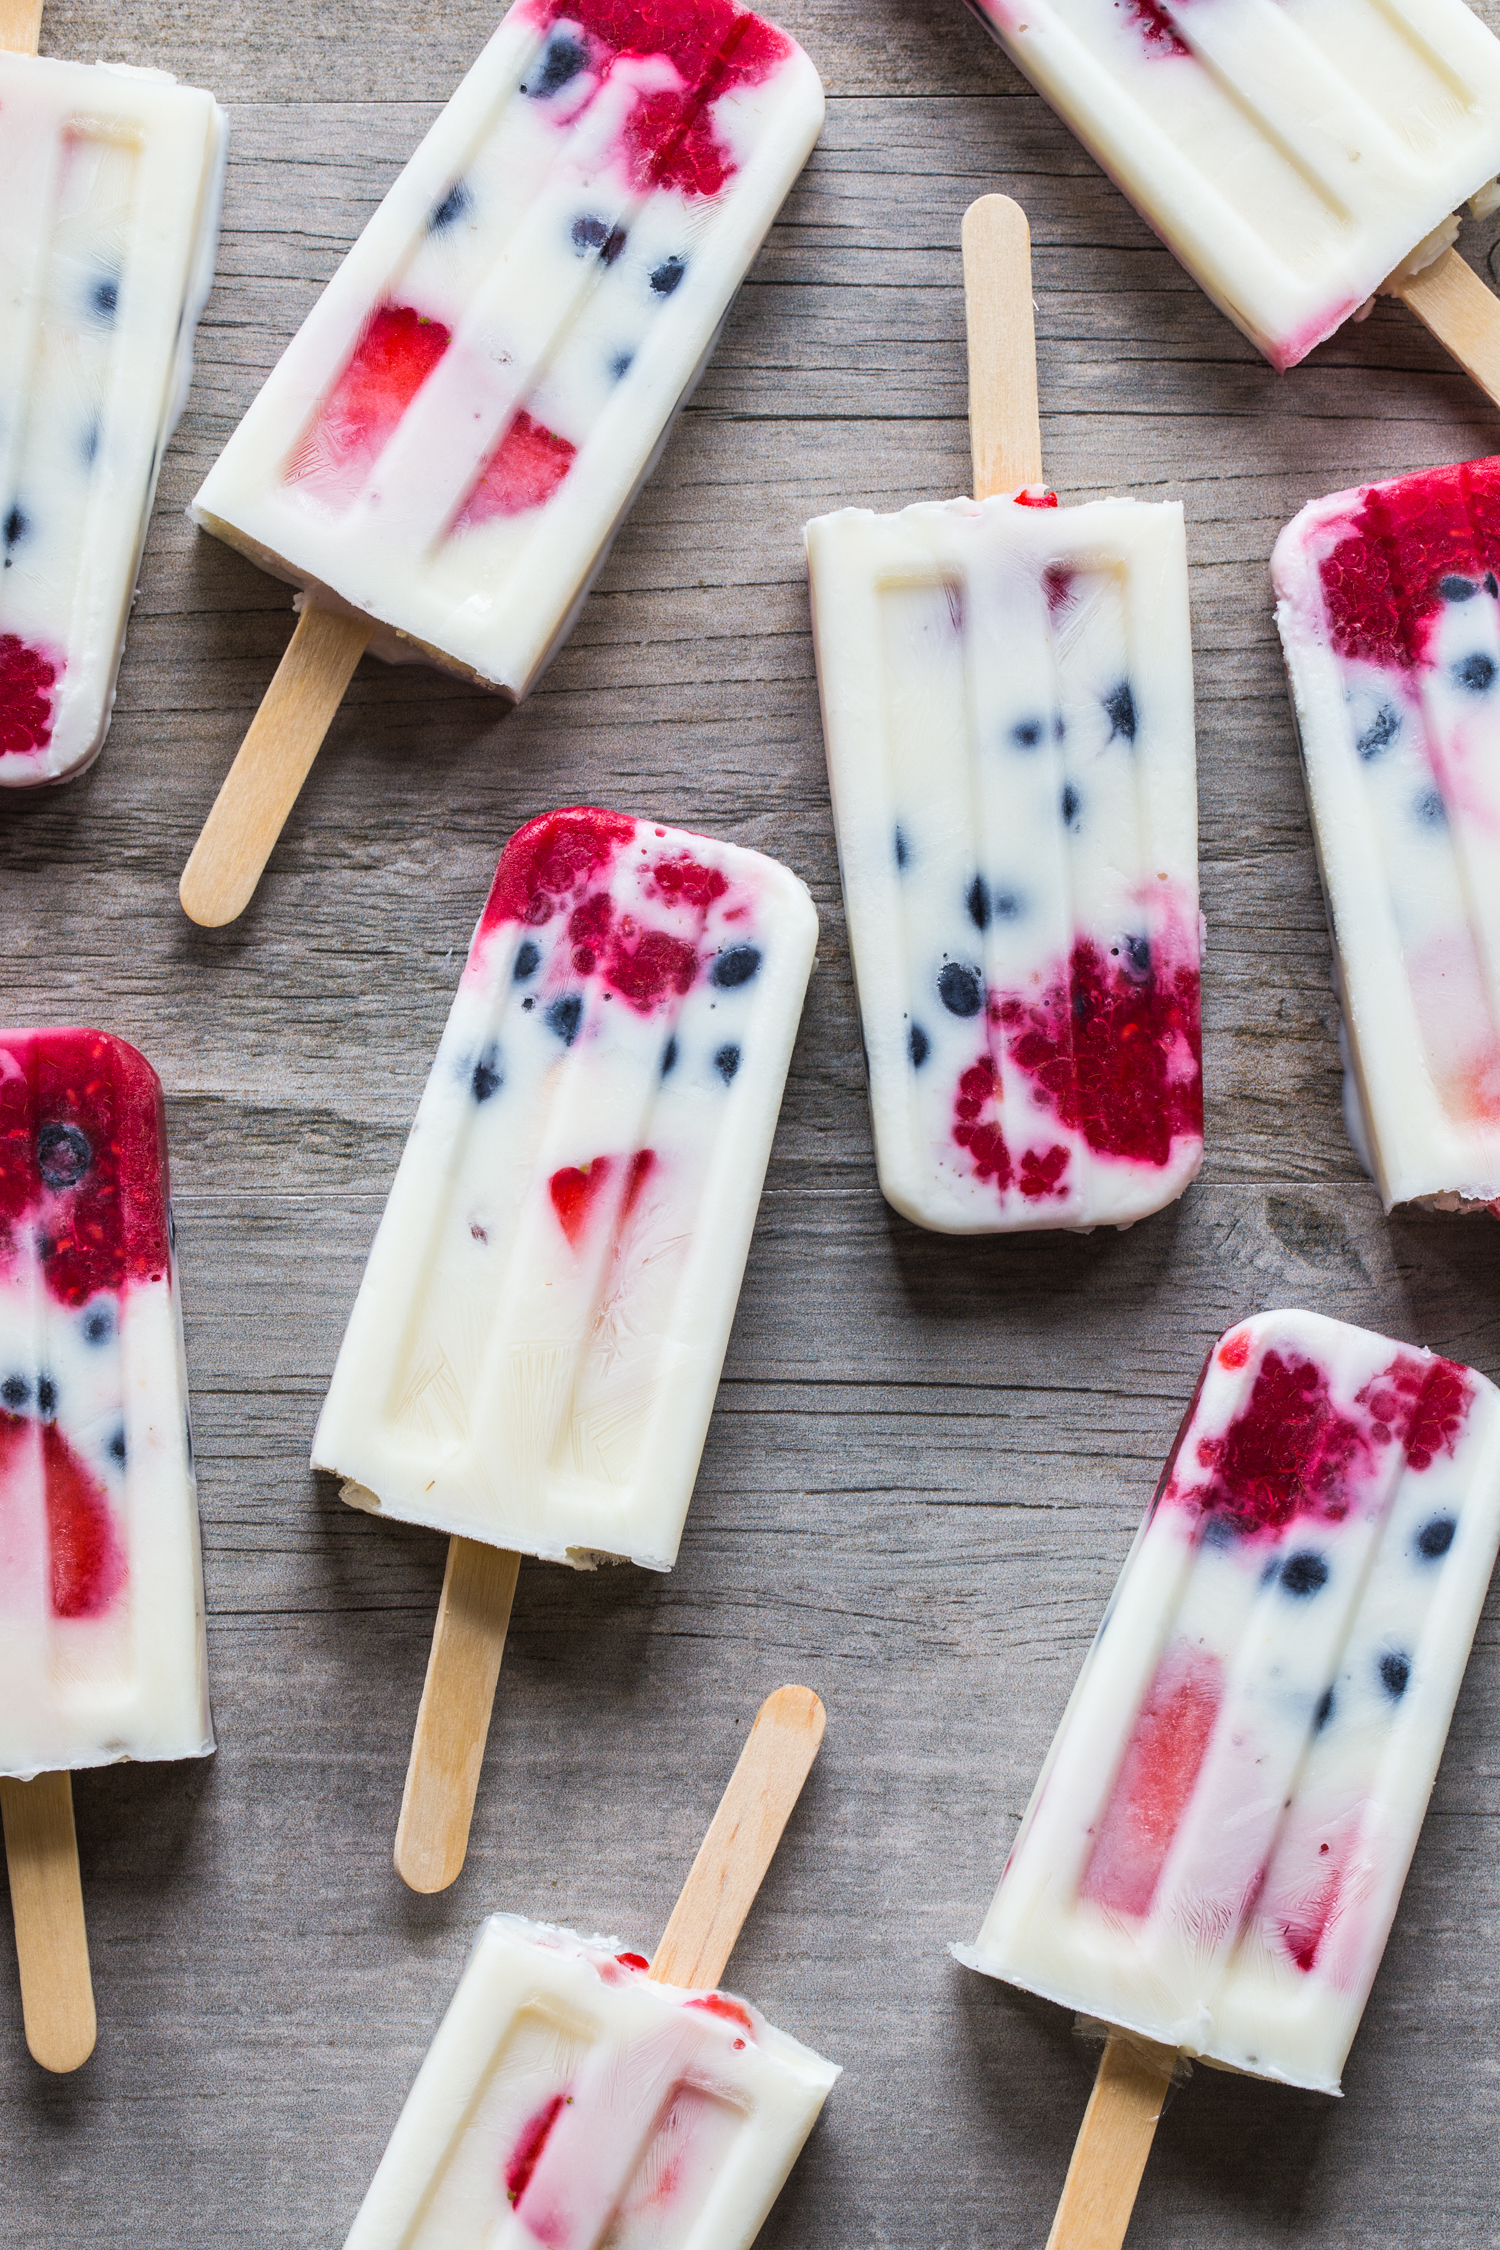 Creamy Vanilla Berry Popsicles made with wholesome milk, fresh berries, and vanilla yogurt